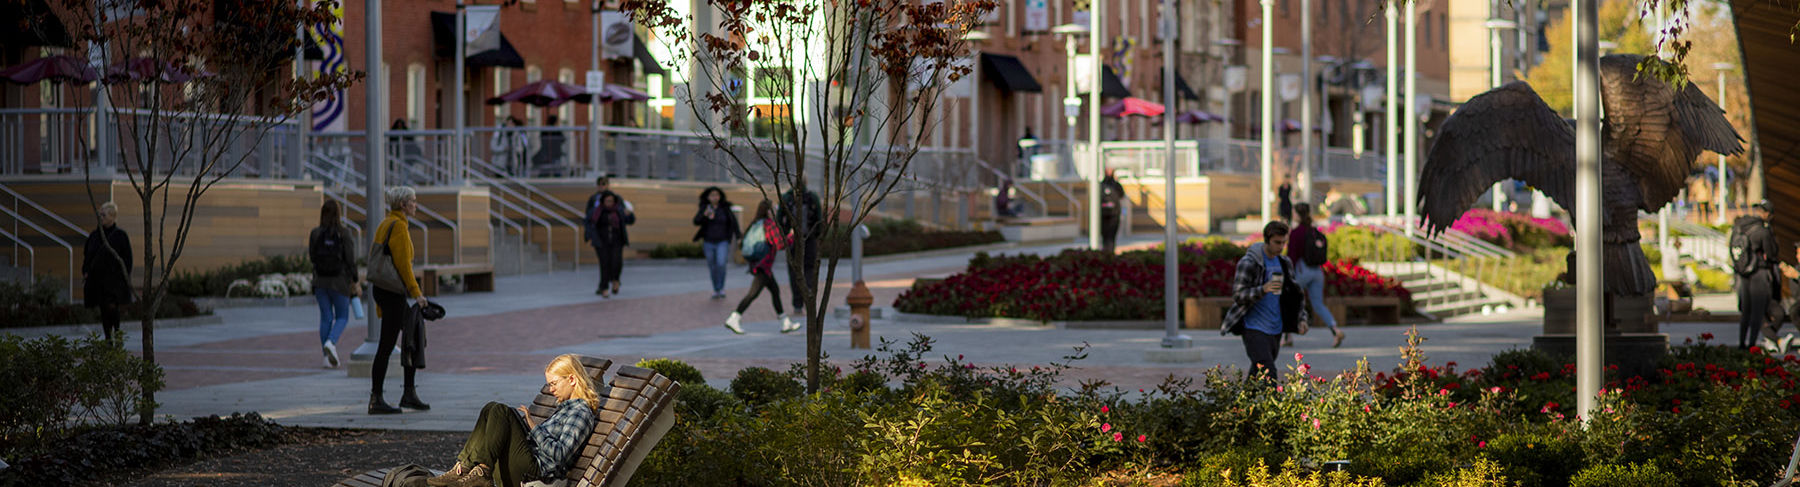 Students on Liacouras Walk between classes on Main Campus